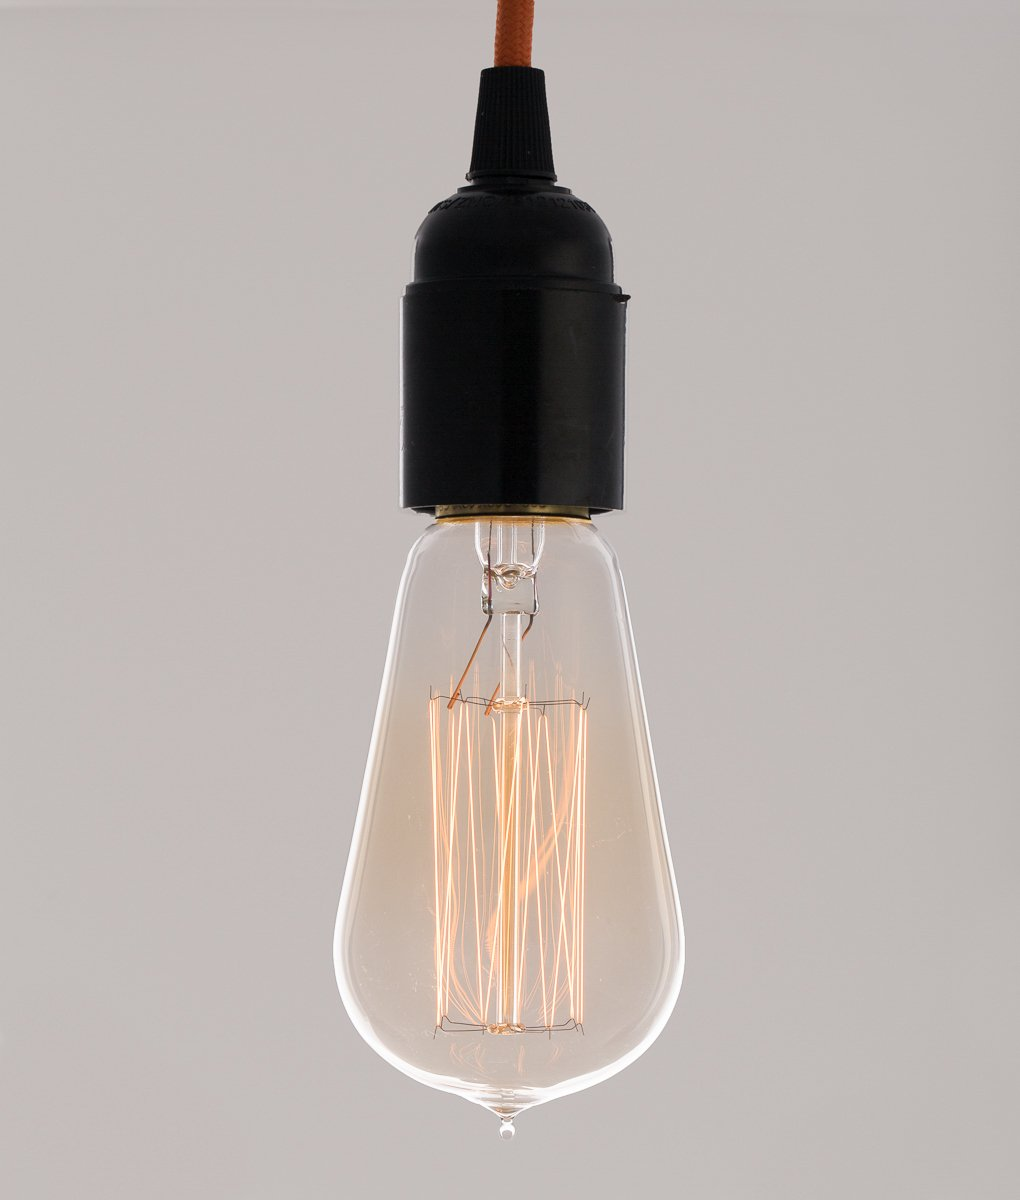 Vintage Light Bulb Squirrel Cage Filament Old Fashioned Edison Wiring Lamp E27 Screw Kitchen Home